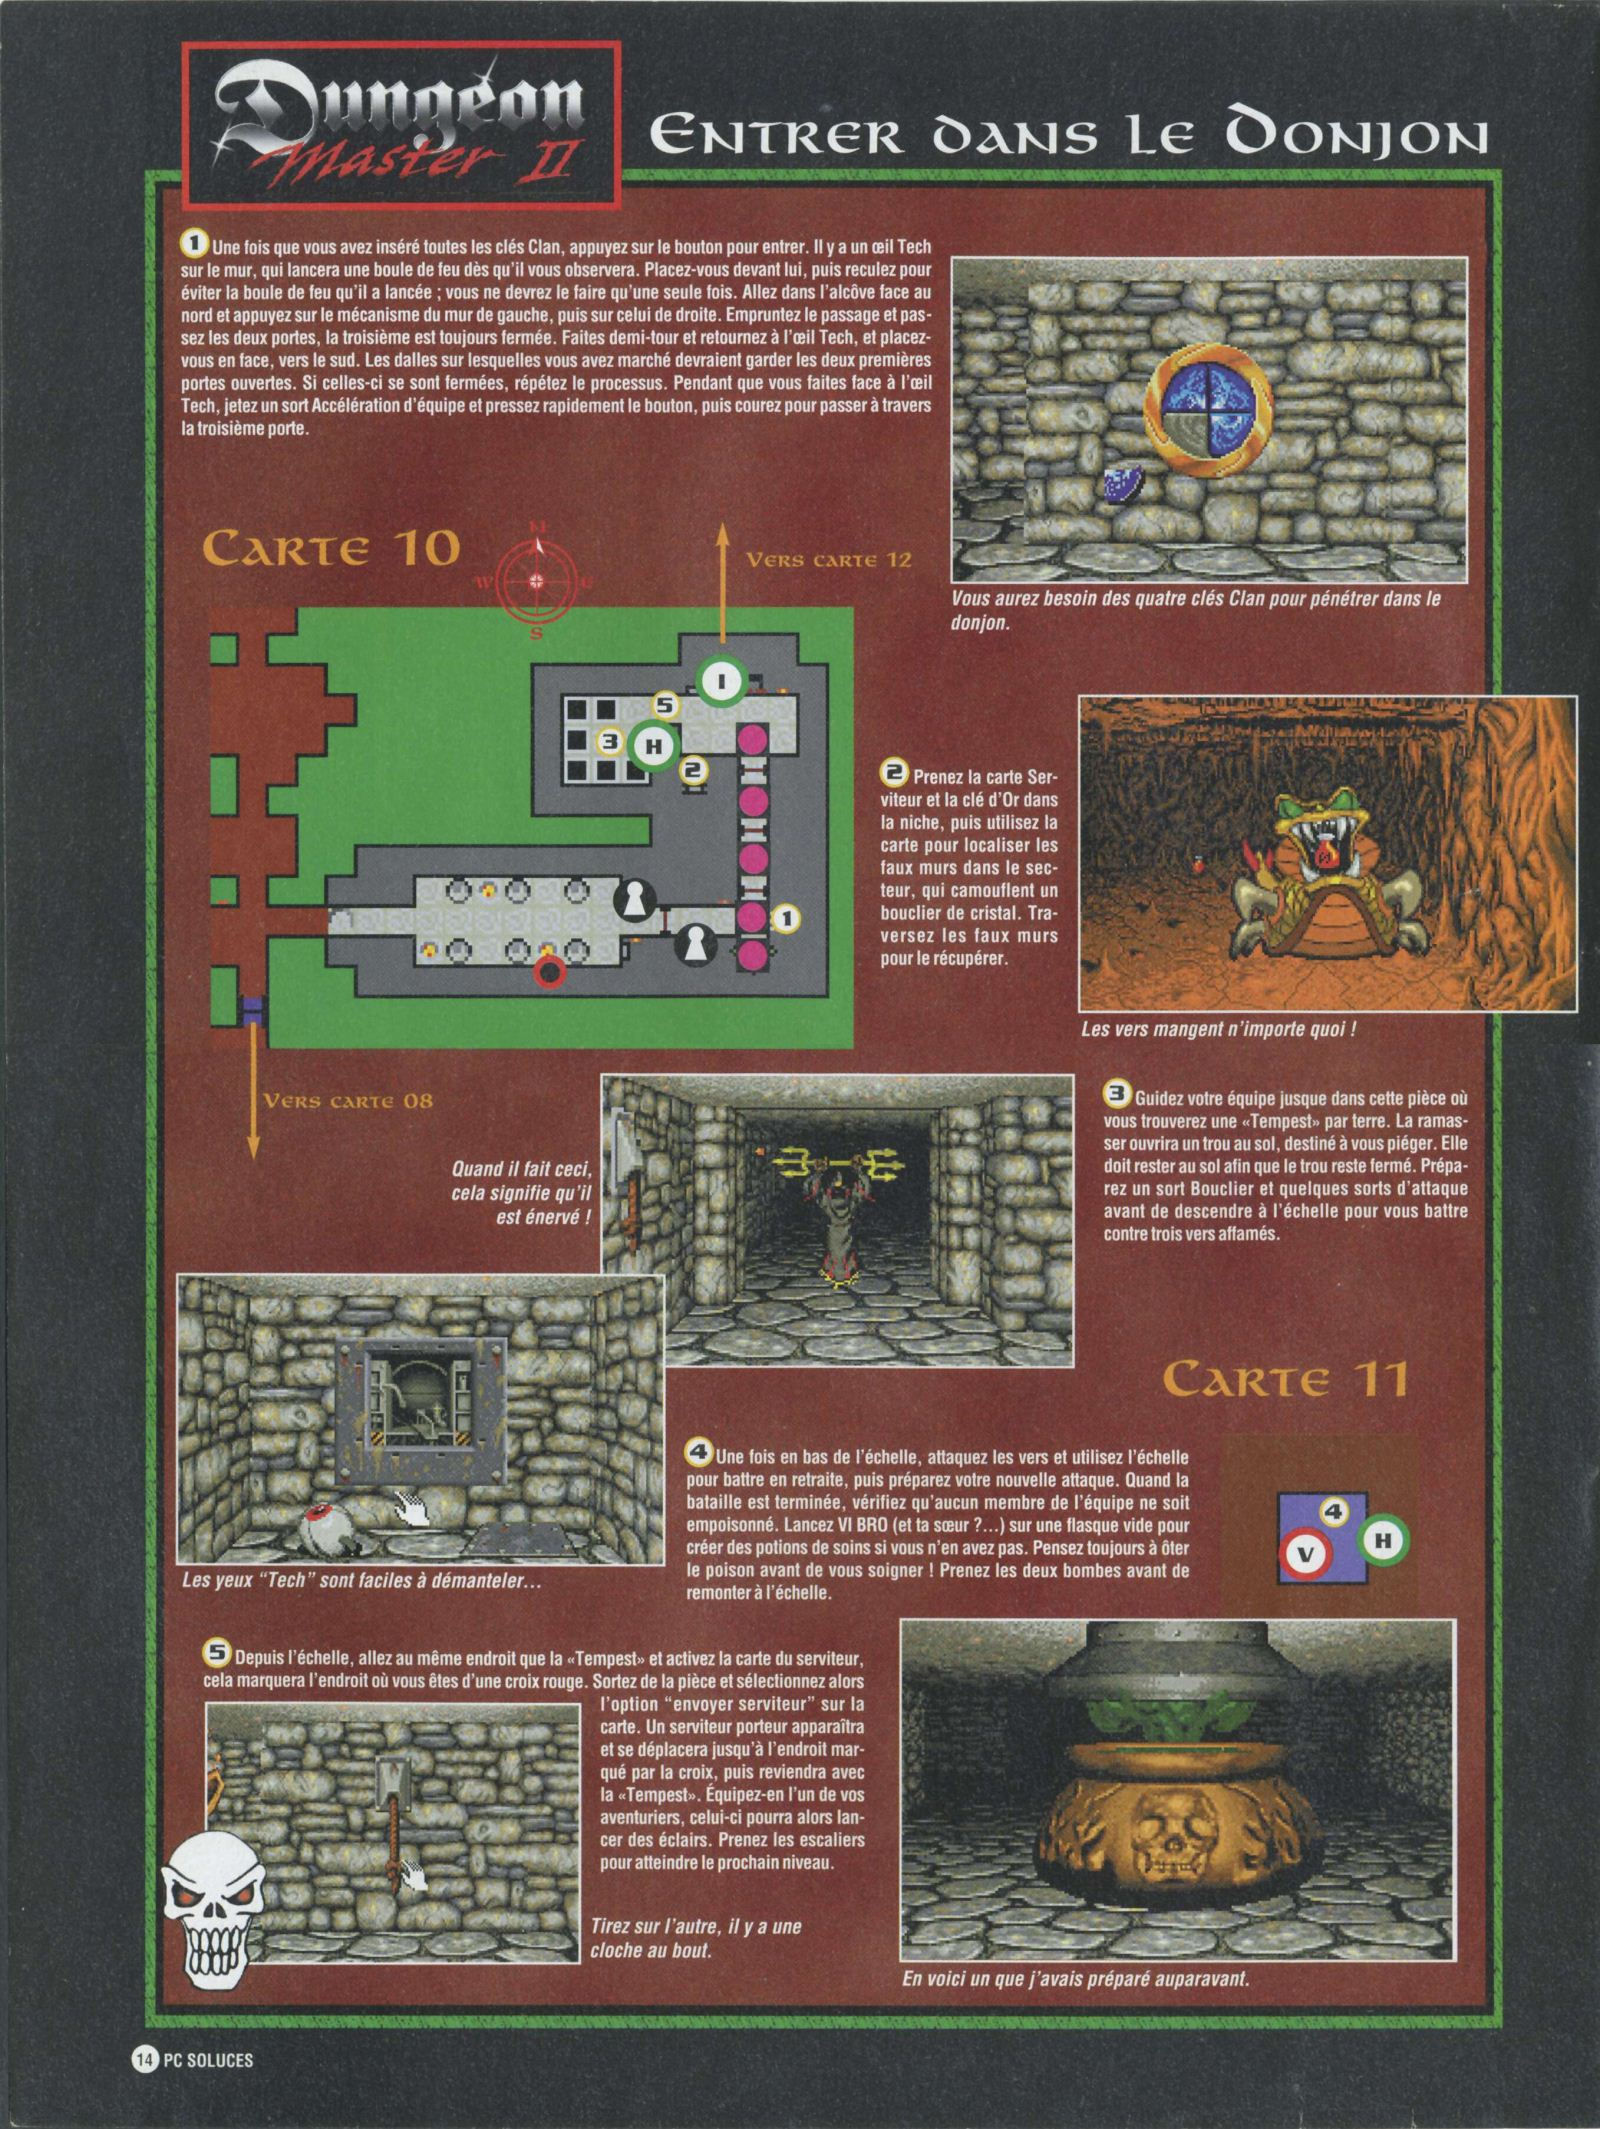 Dungeon Master II solution published in French magazine &amp;#039;PC Soluces&amp;#039;, Issue#1, February-March 1996, Page14